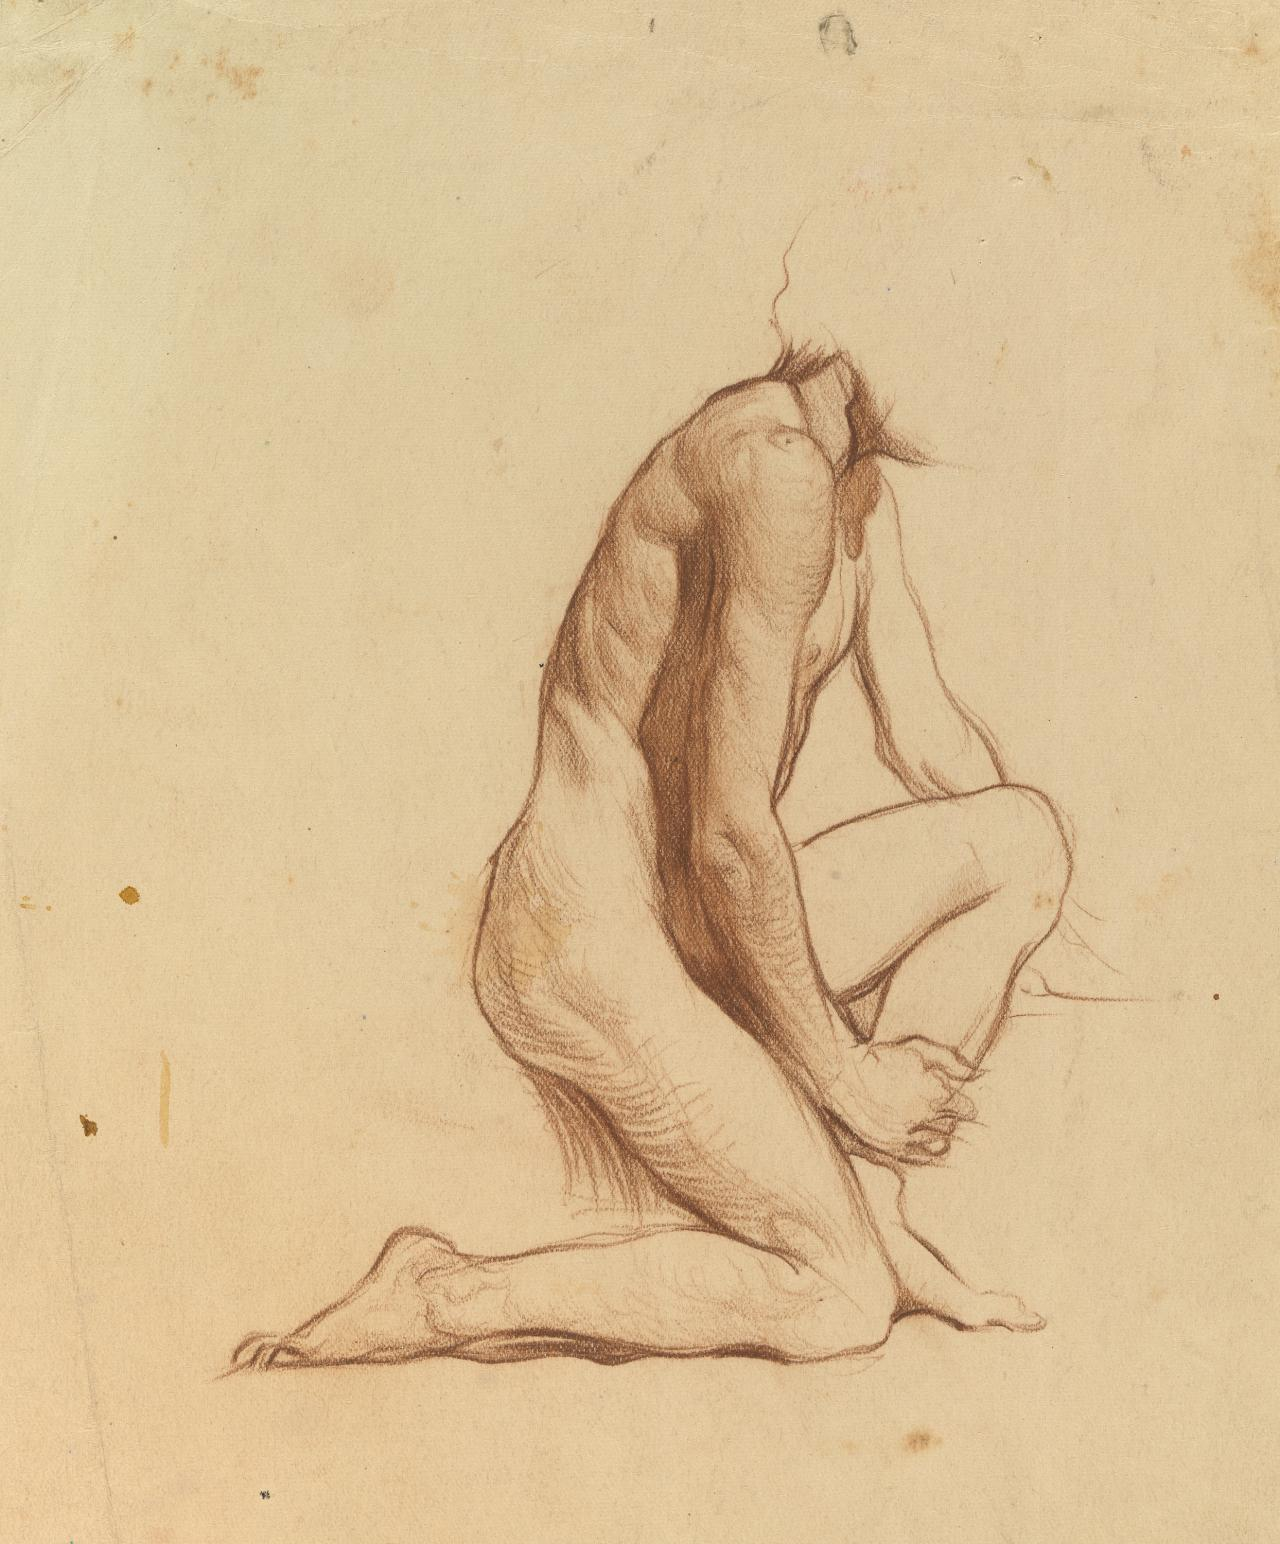 Male nude study - side view